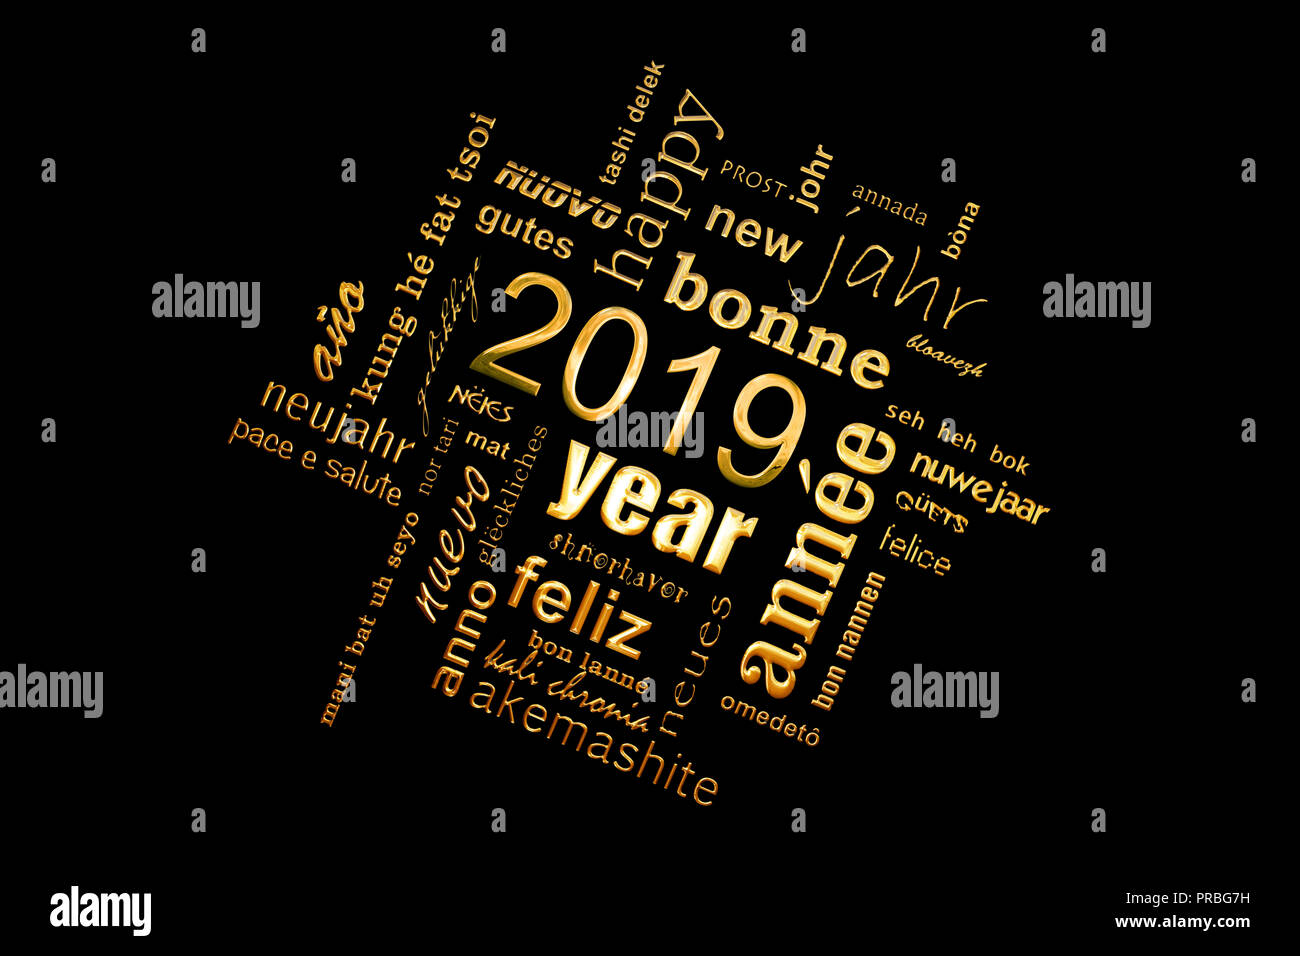 New year greeting card 2019. Multilingual word cloud, golden letters on black background - Stock Image